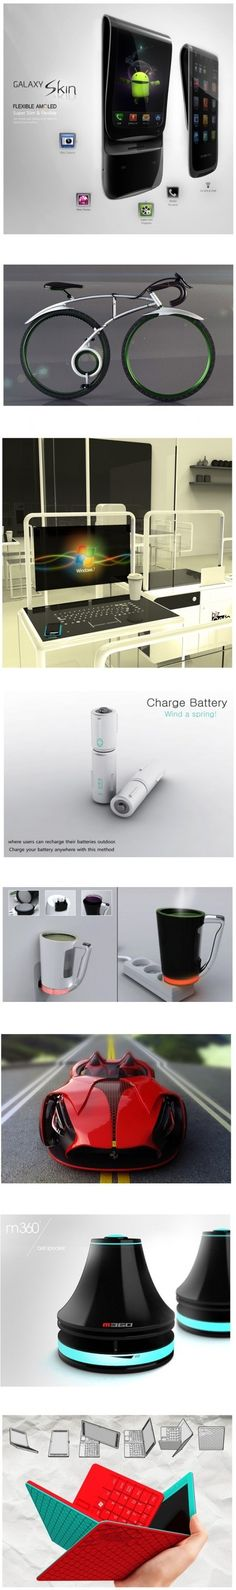 very cool gadgets